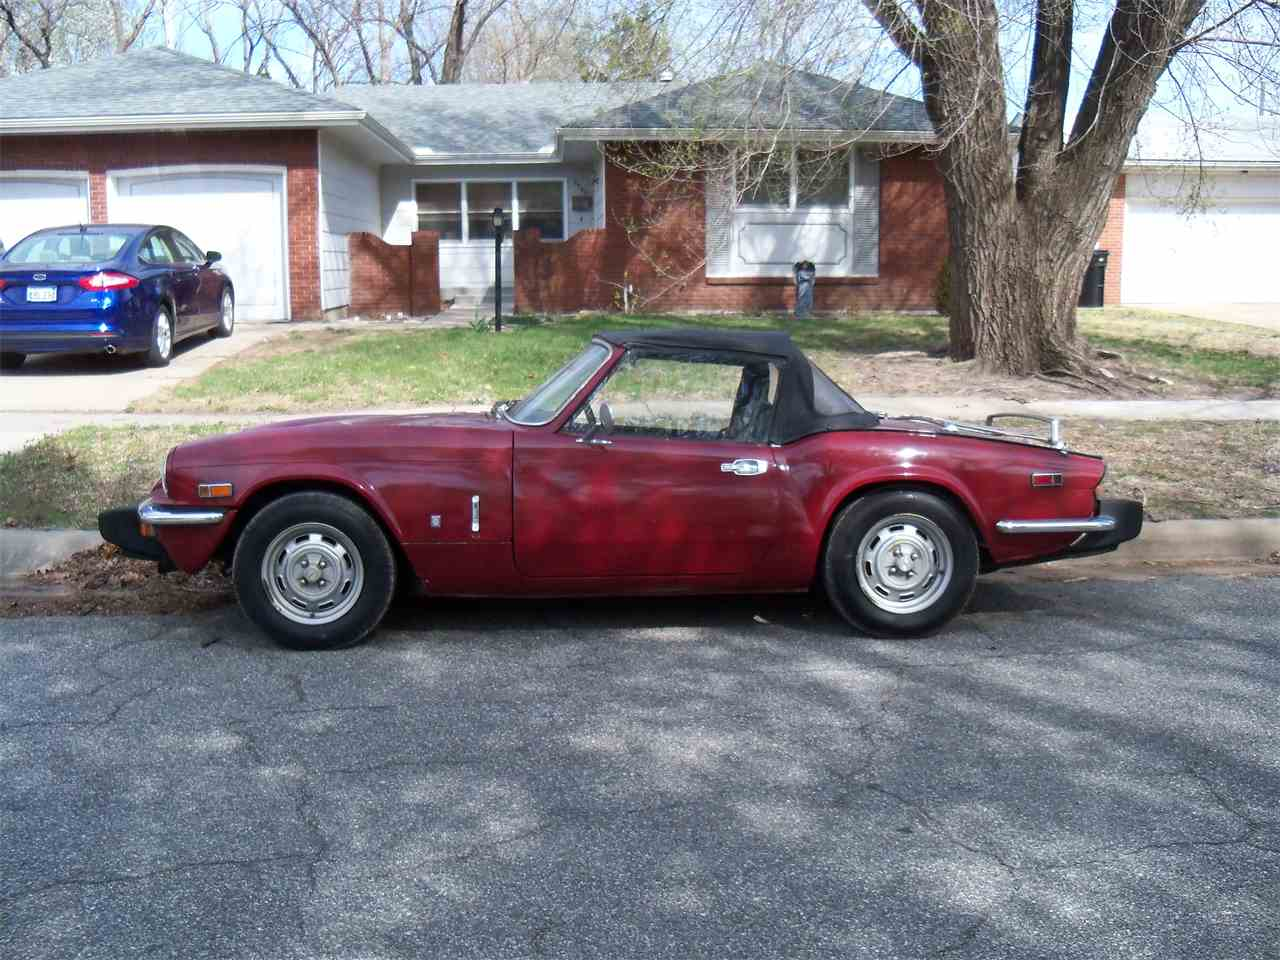 Large Picture of 1976 Spitfire located in Wichita Kansas - $3,950.00 - C9FB